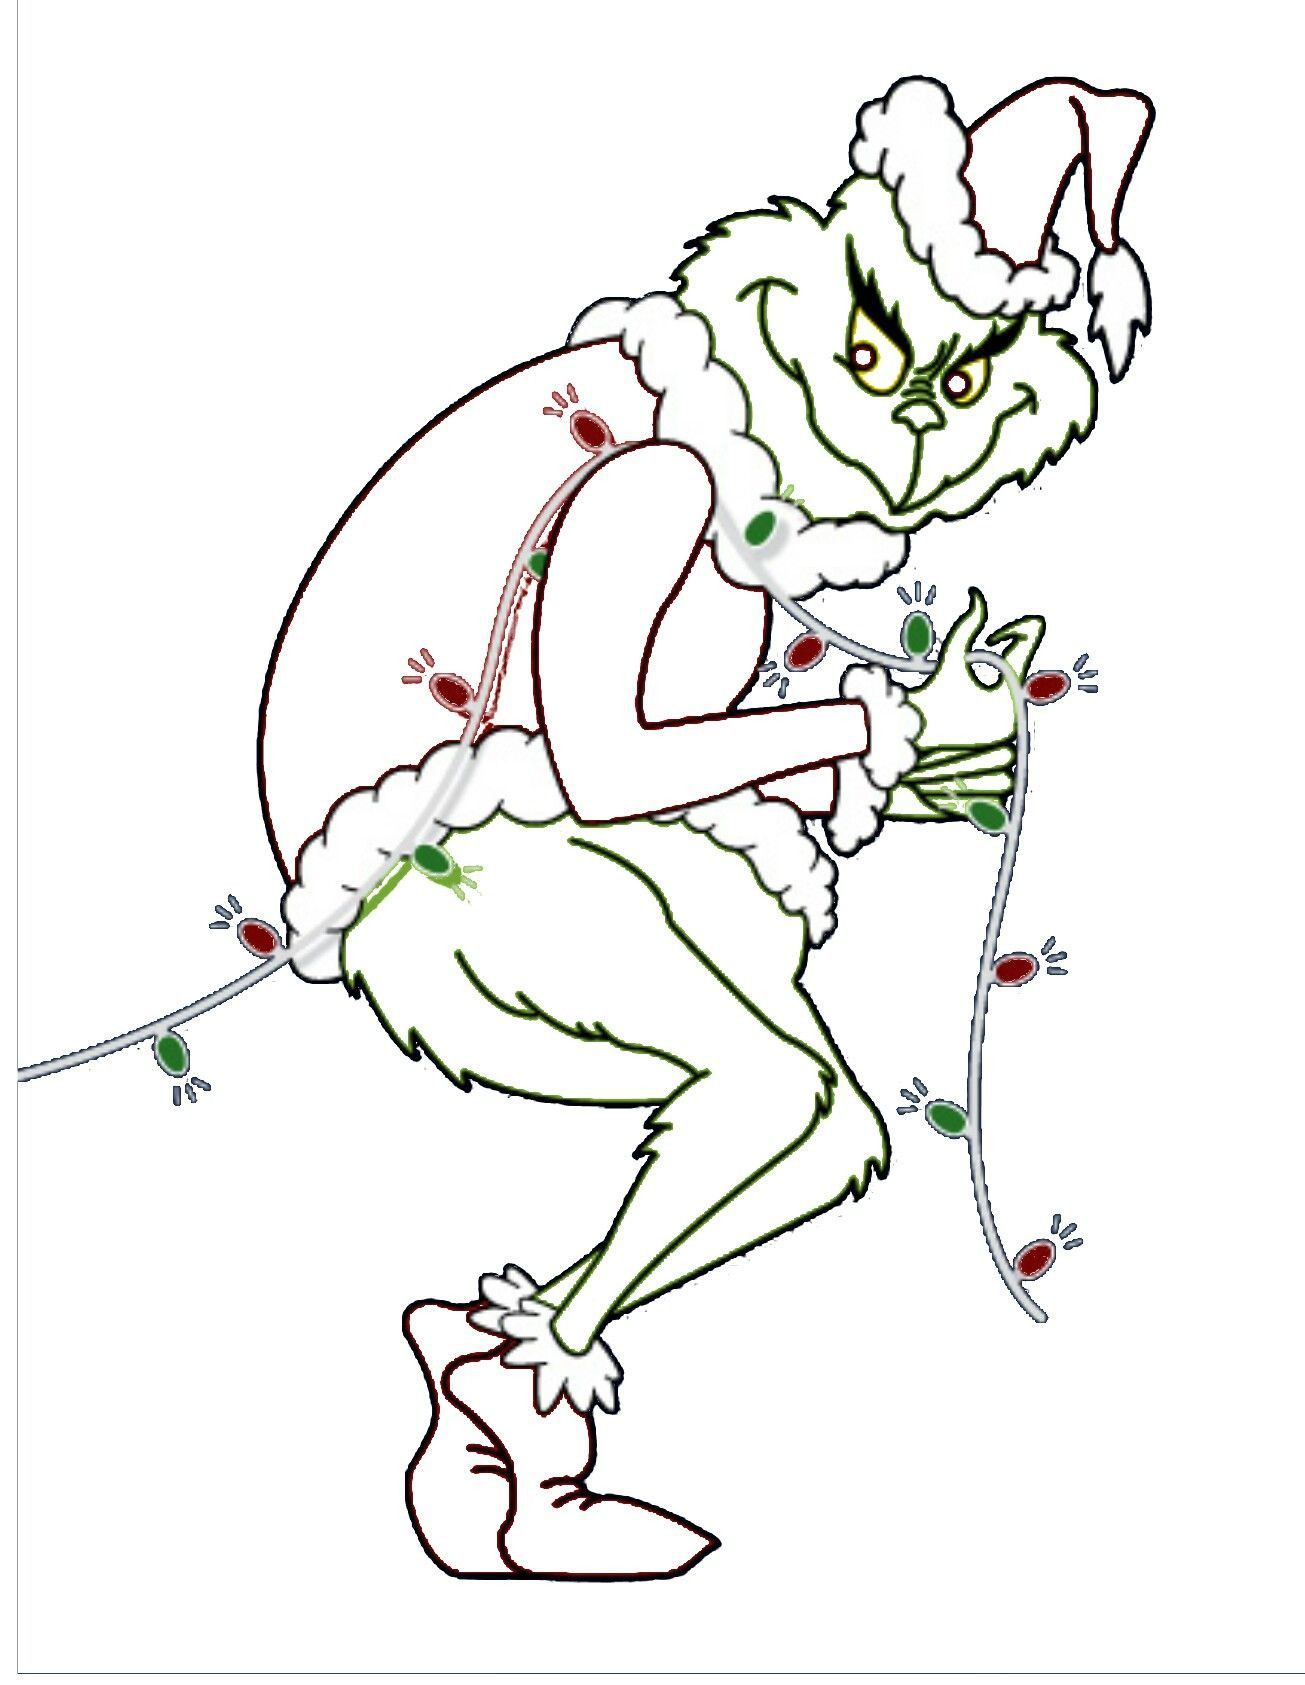 Grinch Stealing Christmas Lights Template In 2021 Grinch Coloring Pages Grinch Stealing Lights Grinch Christmas Decorations